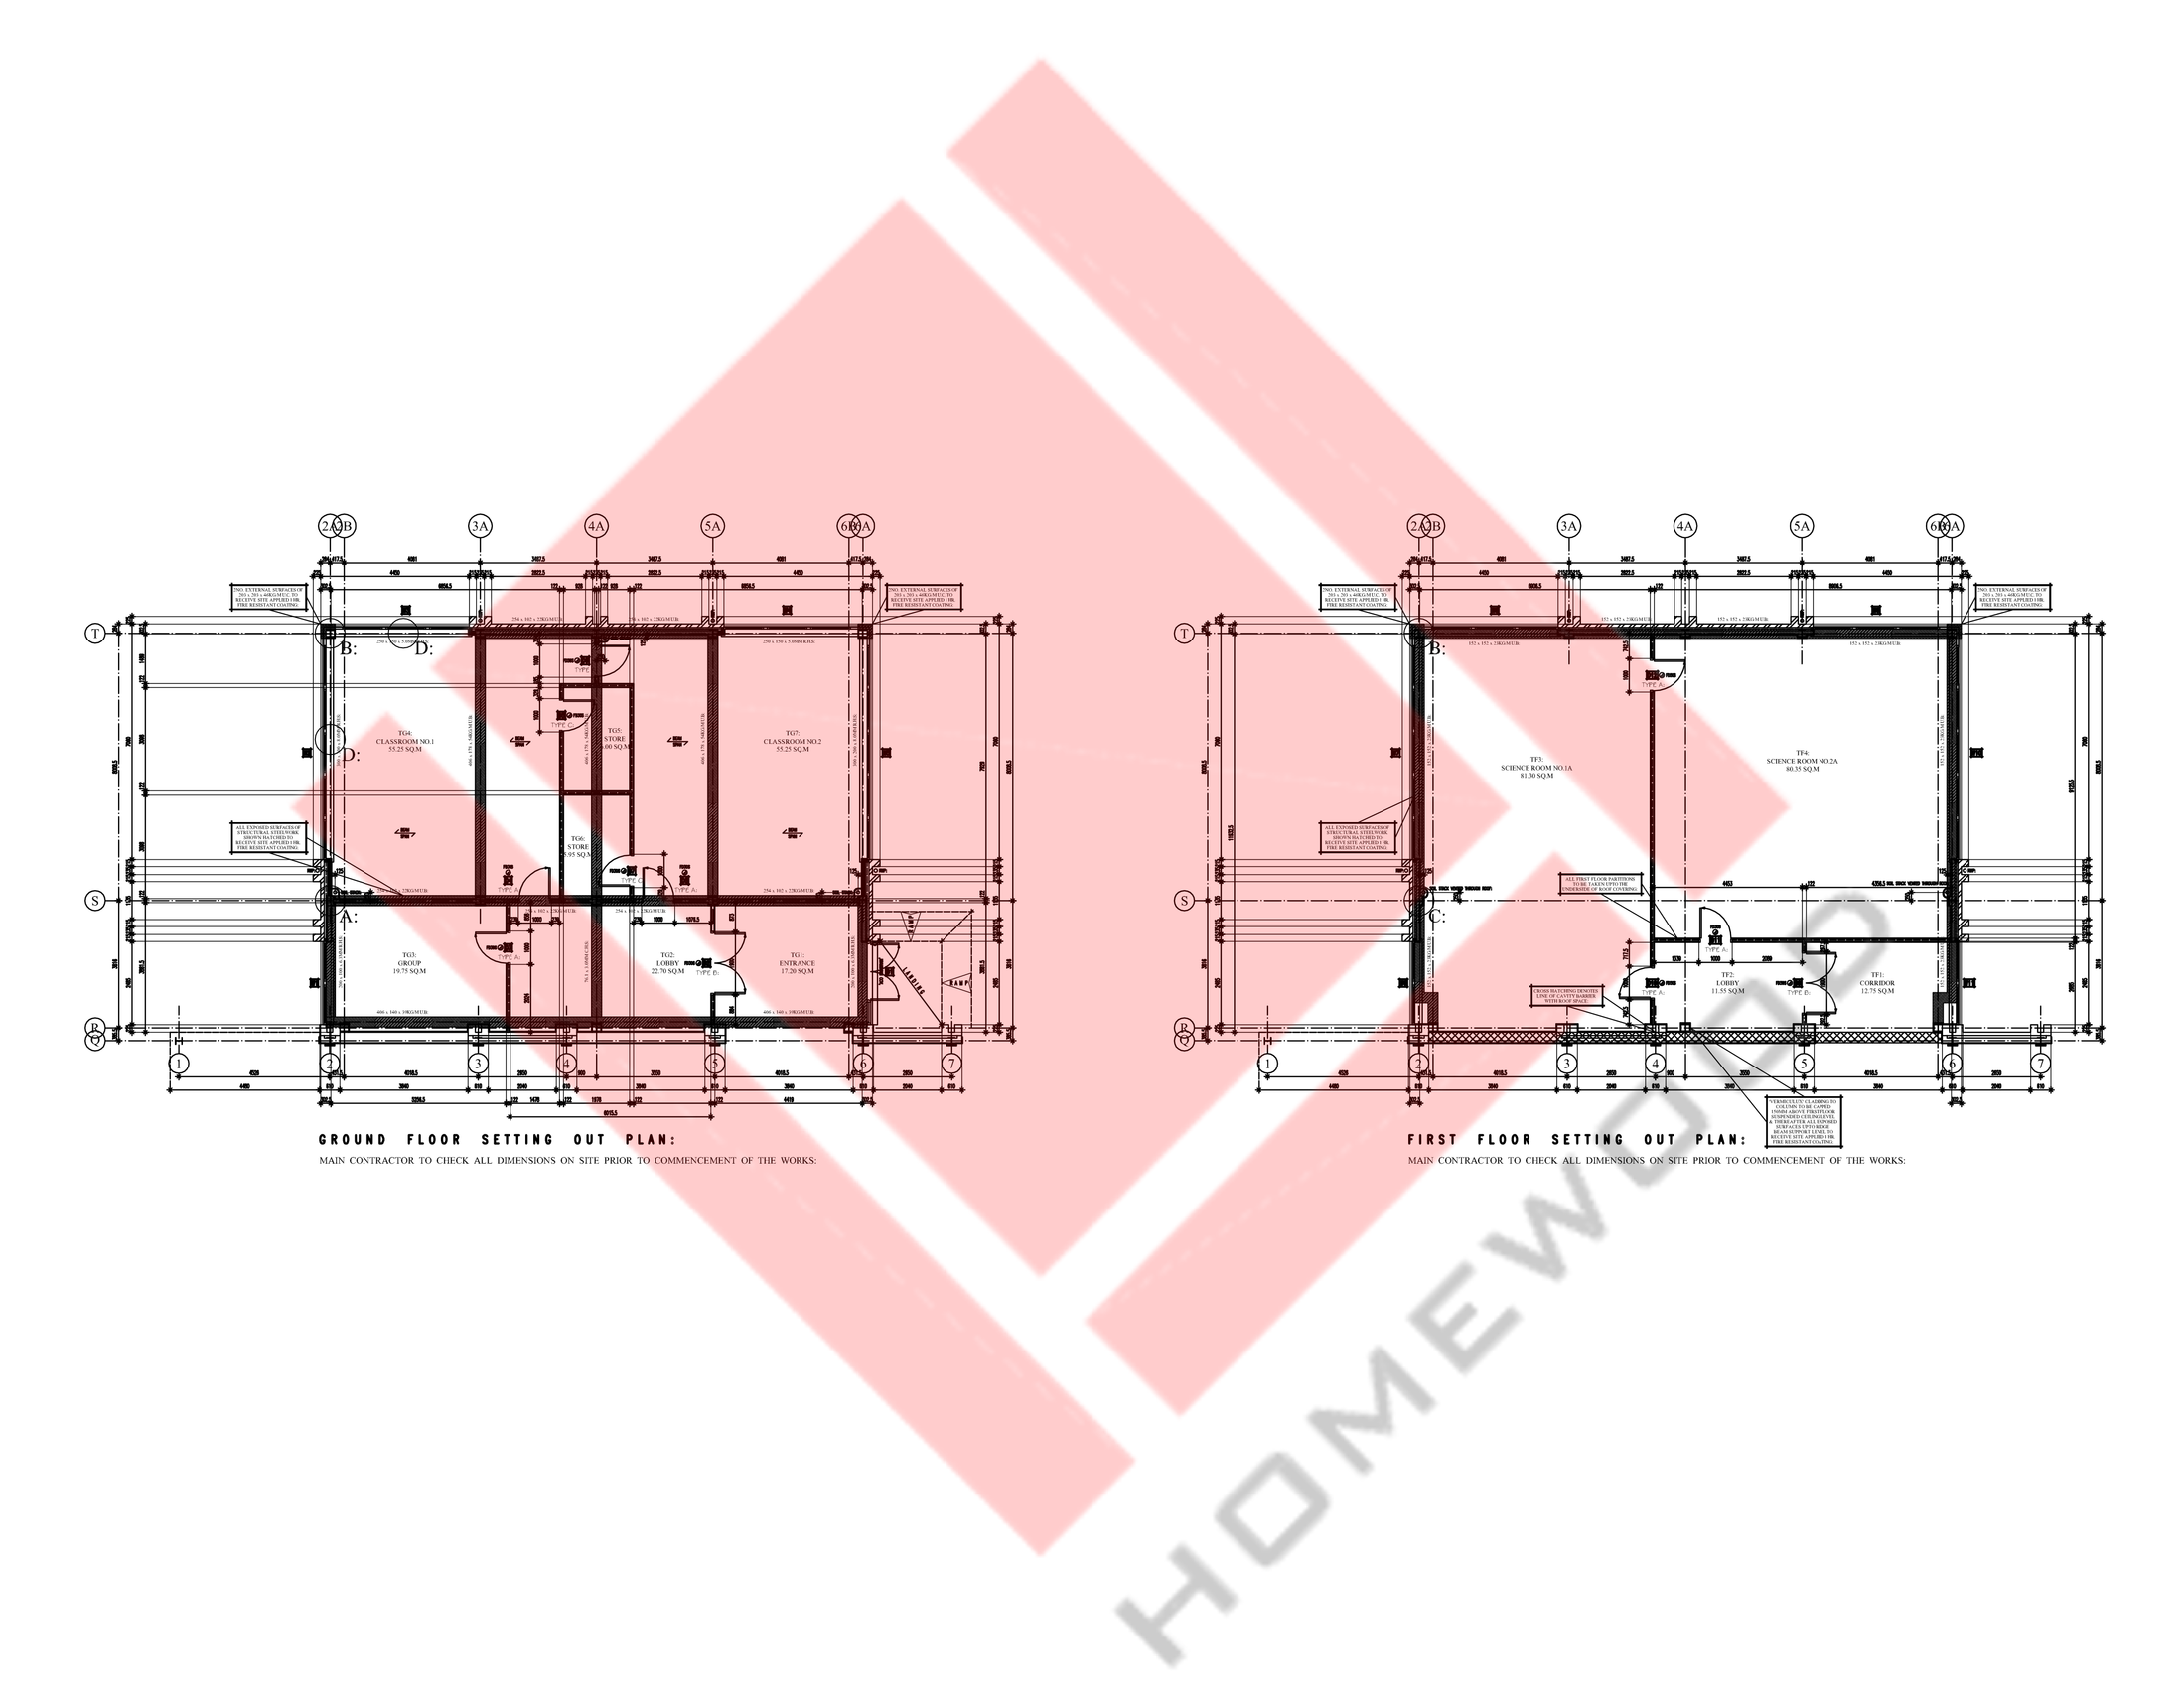 01 Floor Plans.Image.Marked_1.png